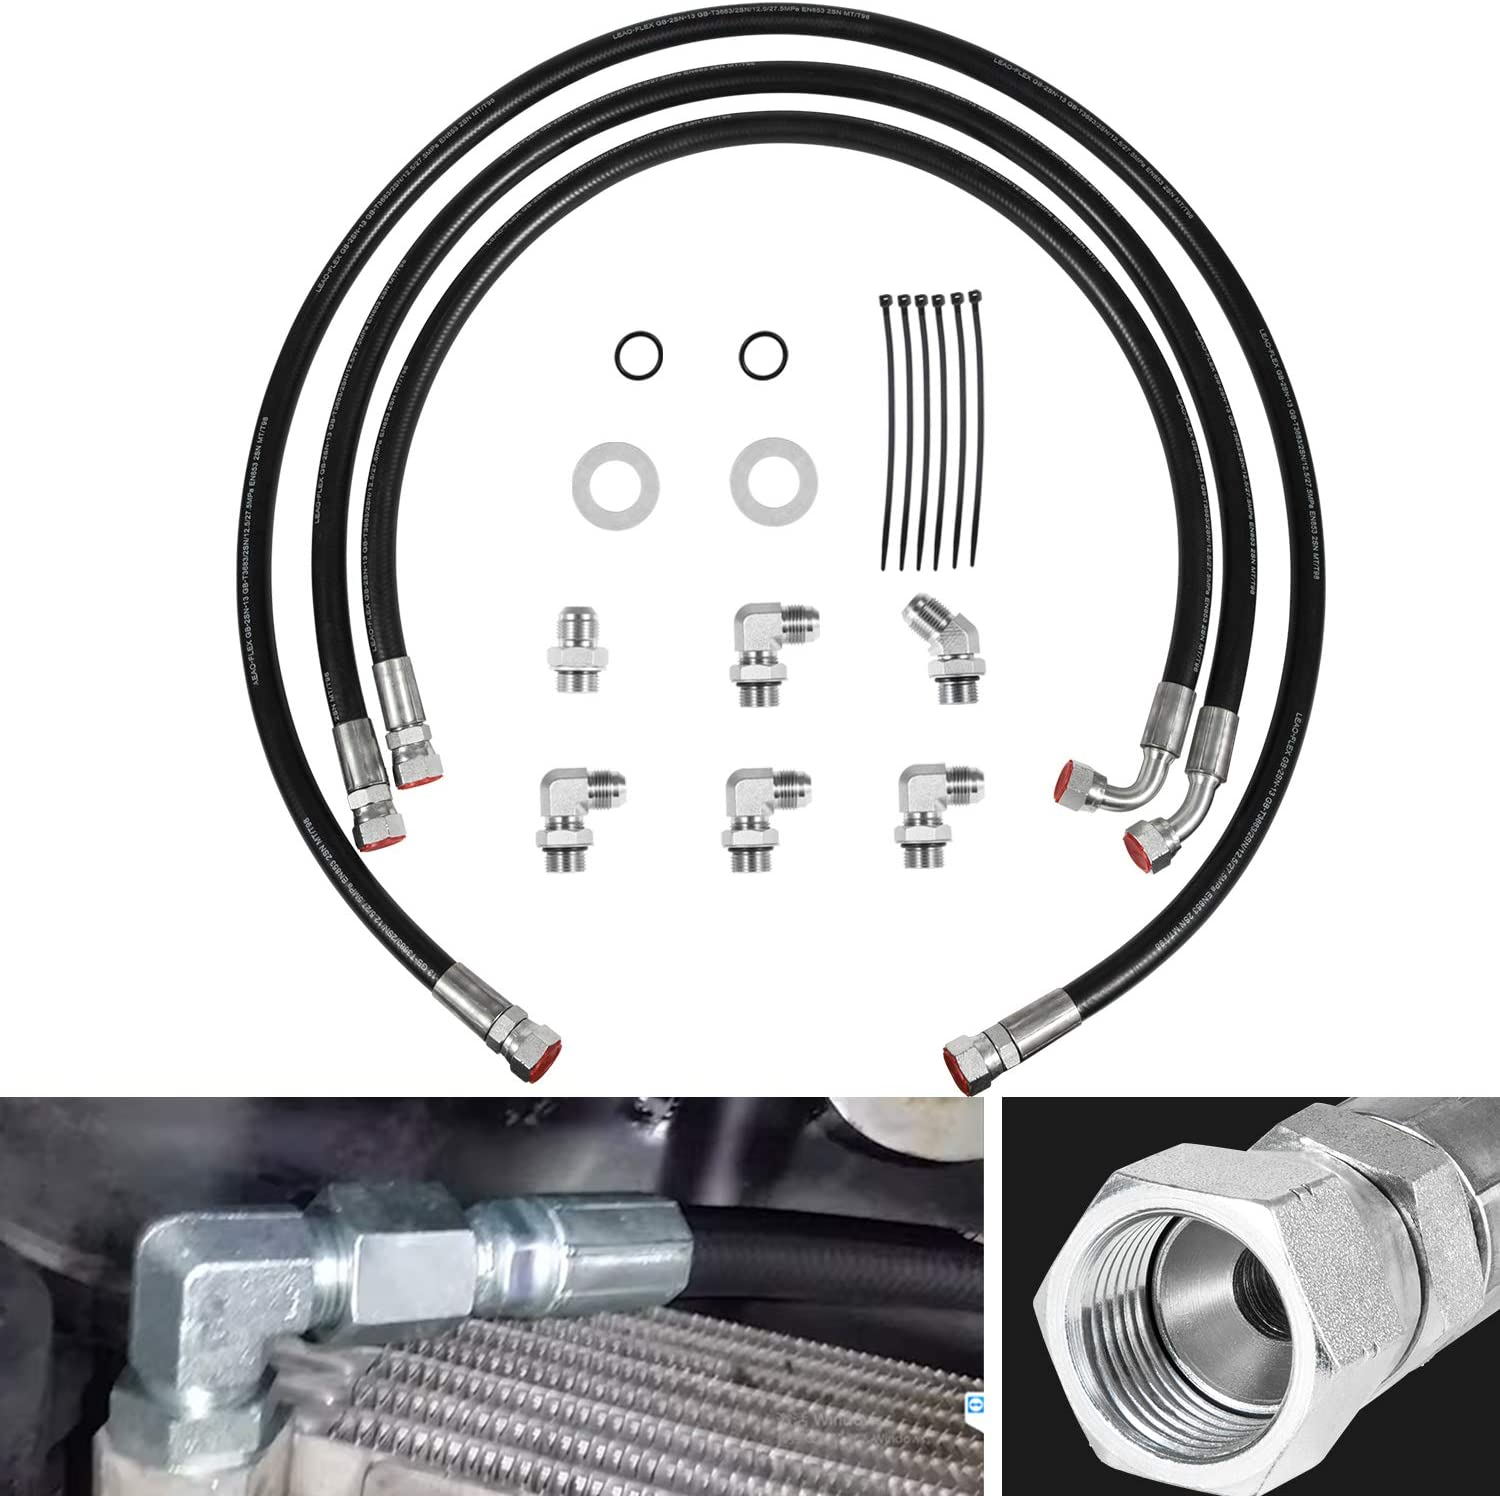 Transmission Cooler Hoses Lines With Fittings Adapters For 2006-2010 Chevy GM GMC 6.6L Duramax w/Allison Transmission Lines Repair